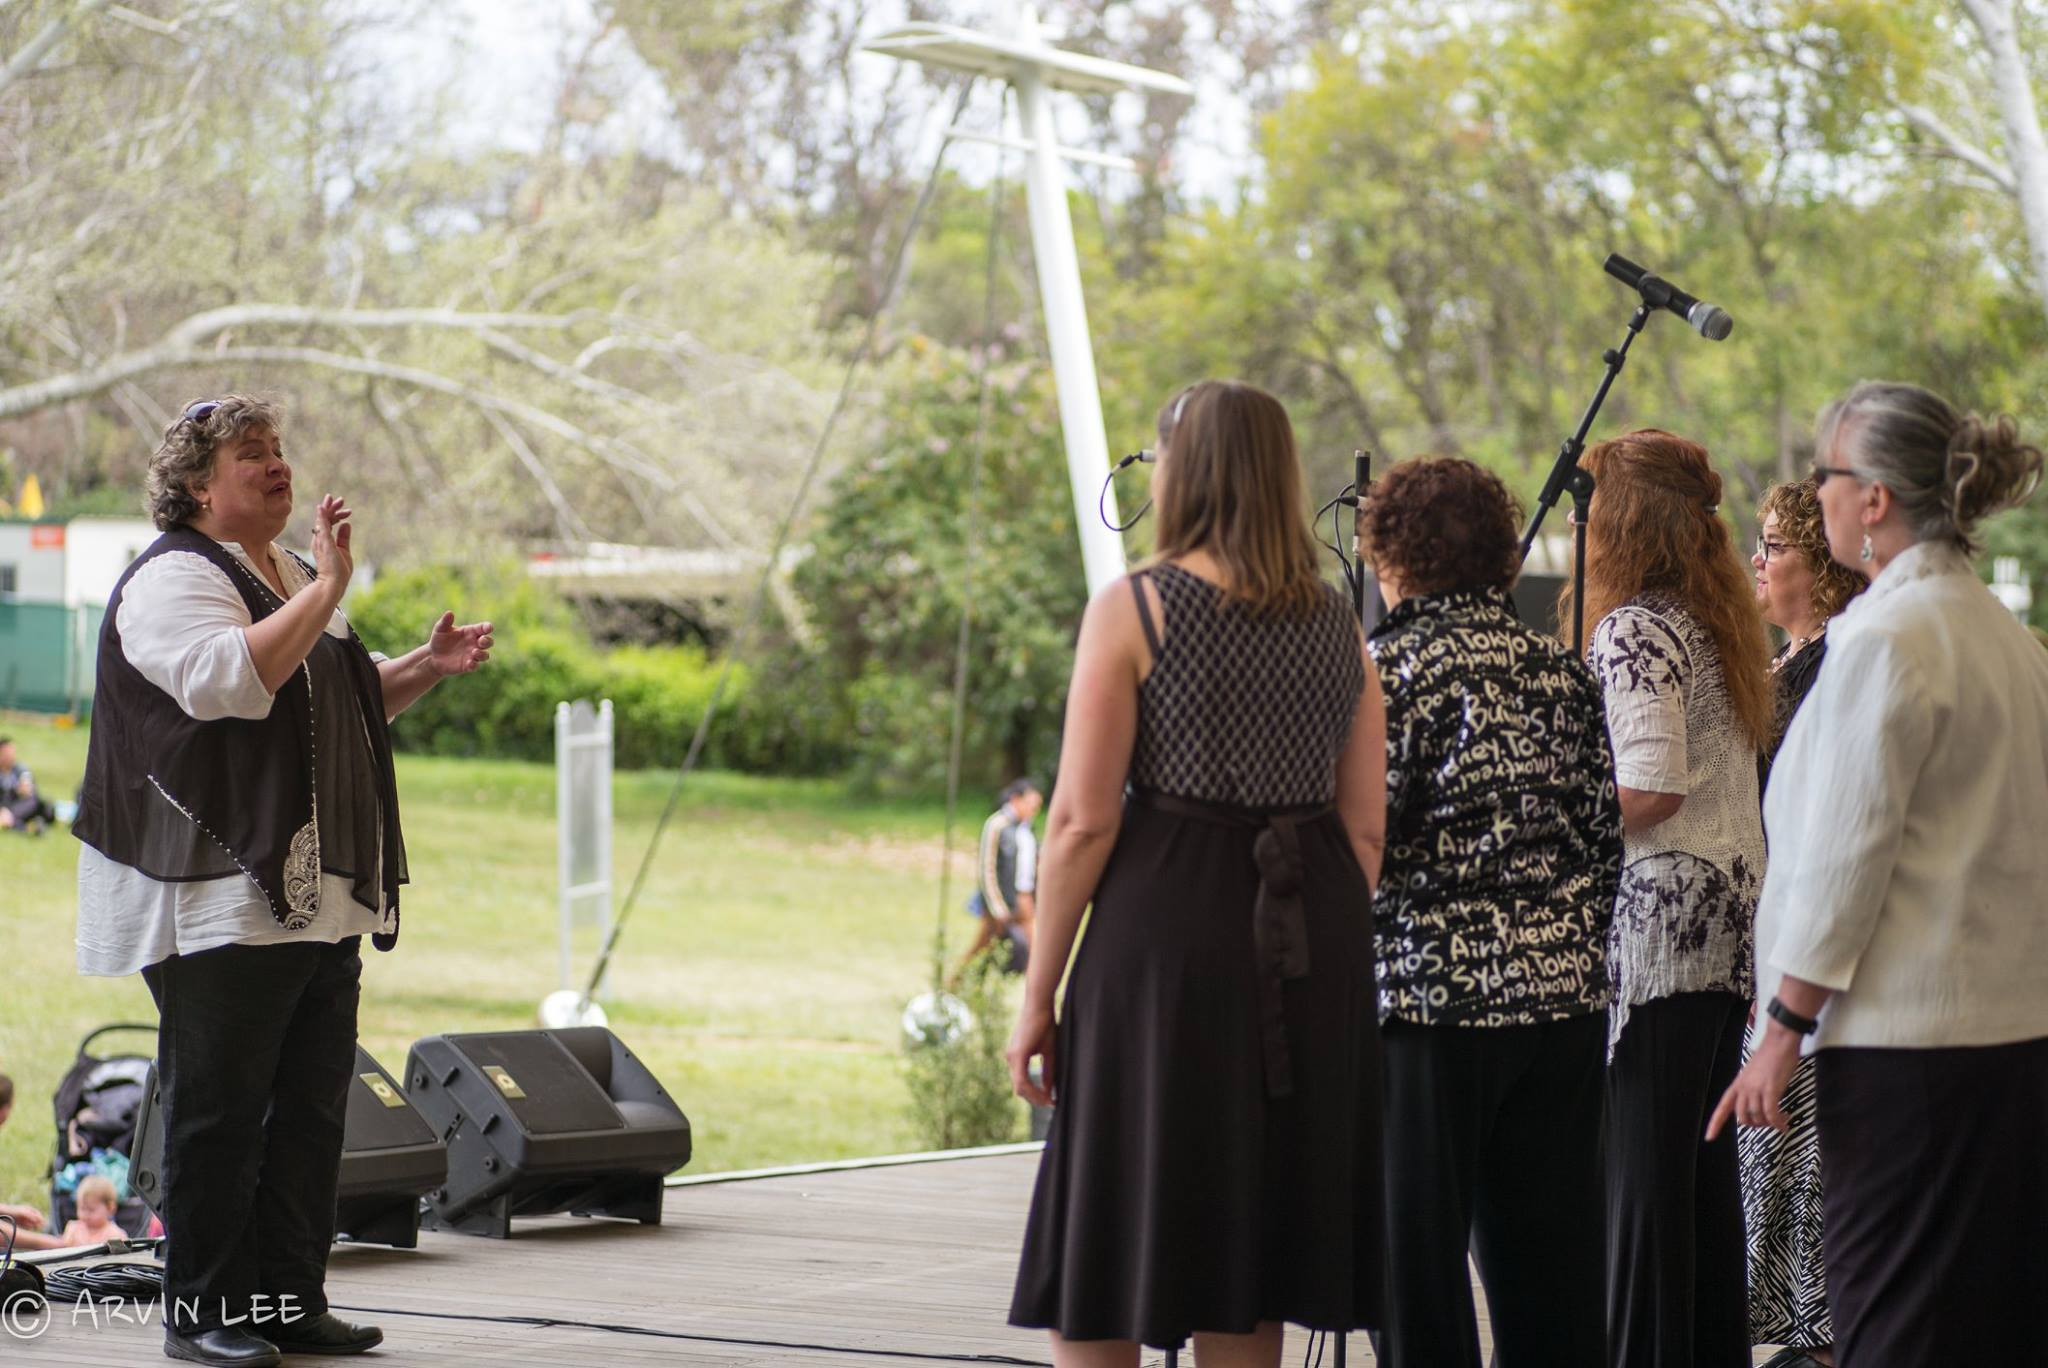 performance at the Scullin shops